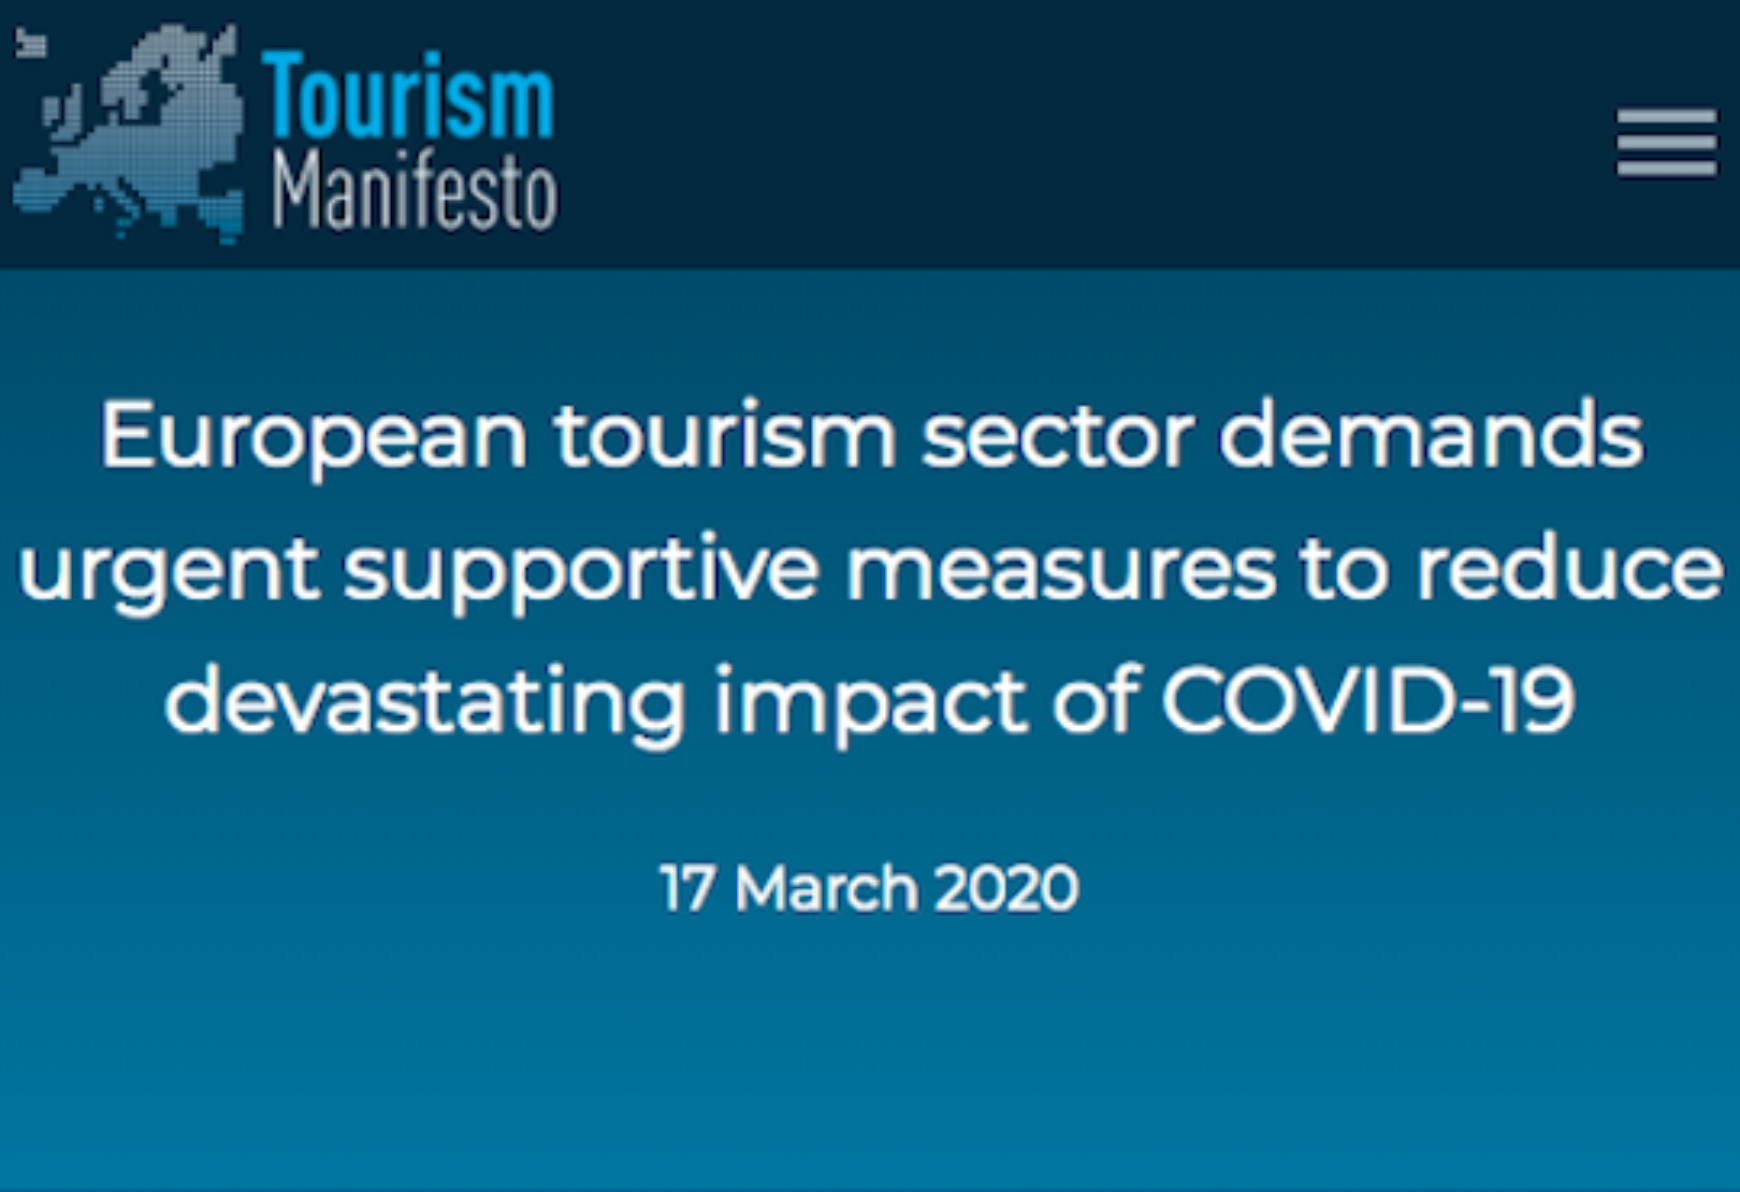 Tourism Manifesto calls for support to the European tourism sector